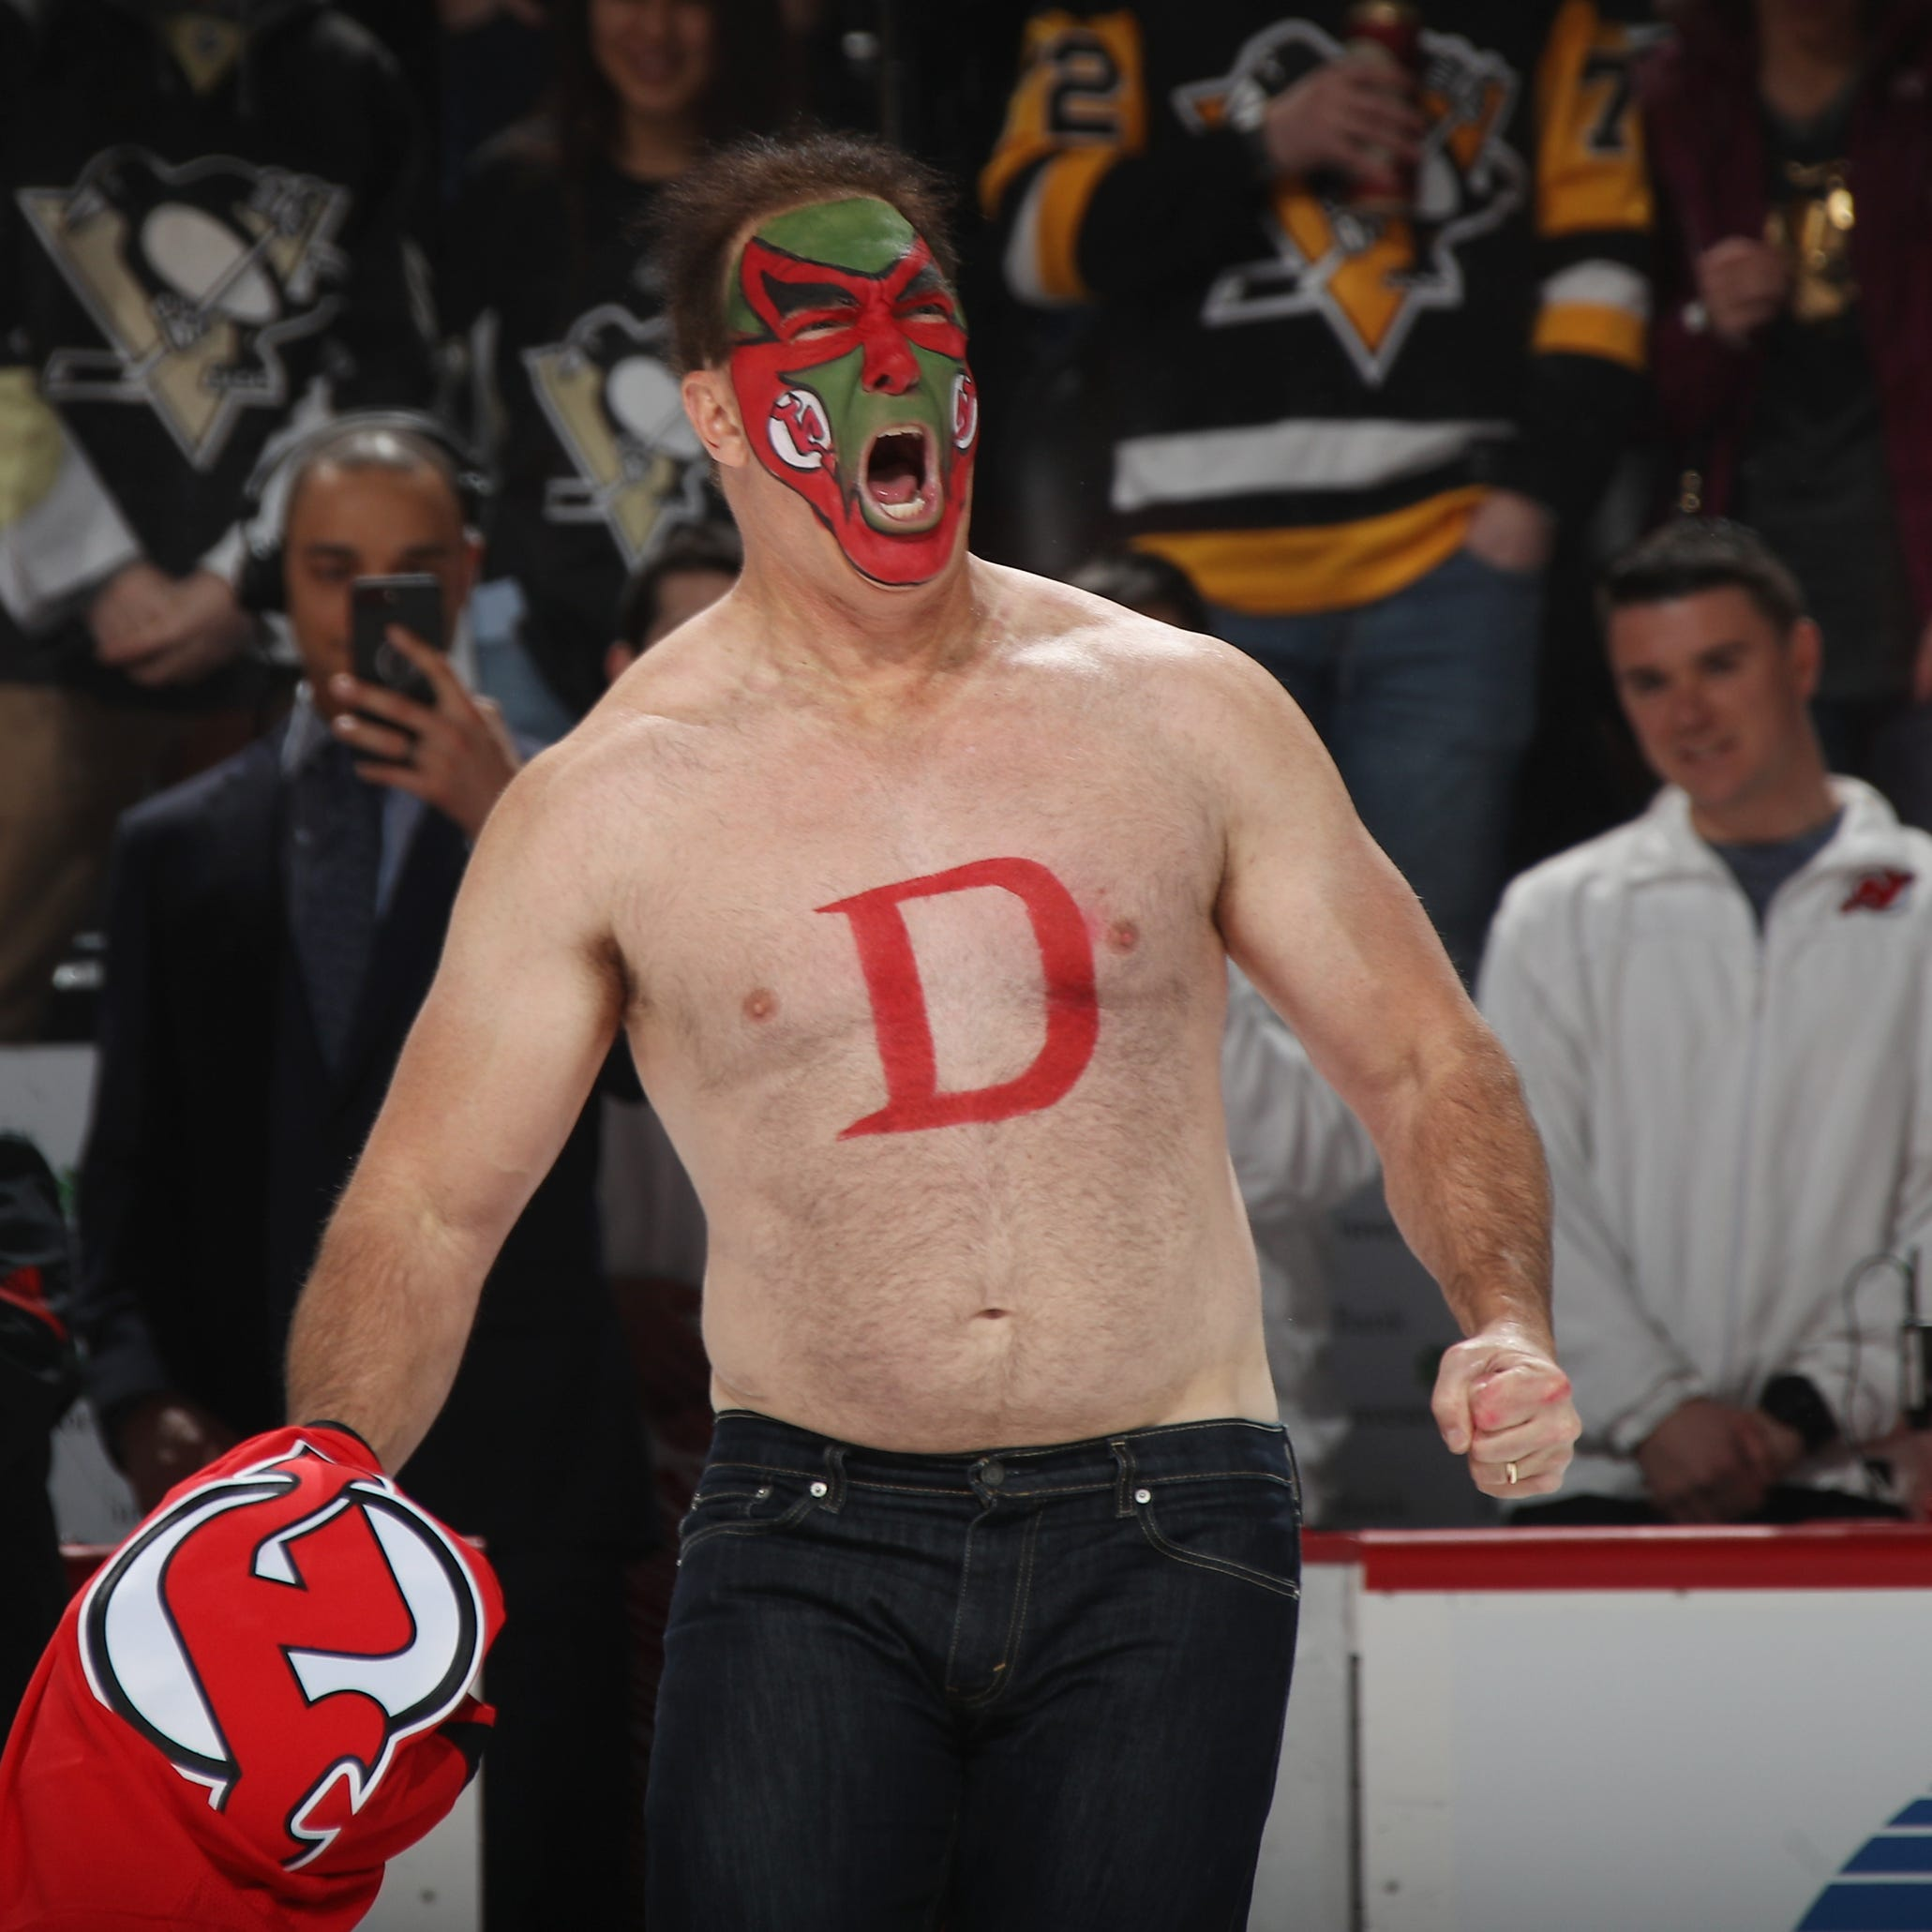 'Seinfeld' actor Patrick Warburton reprises role as Devils fan David Puddy for good cause